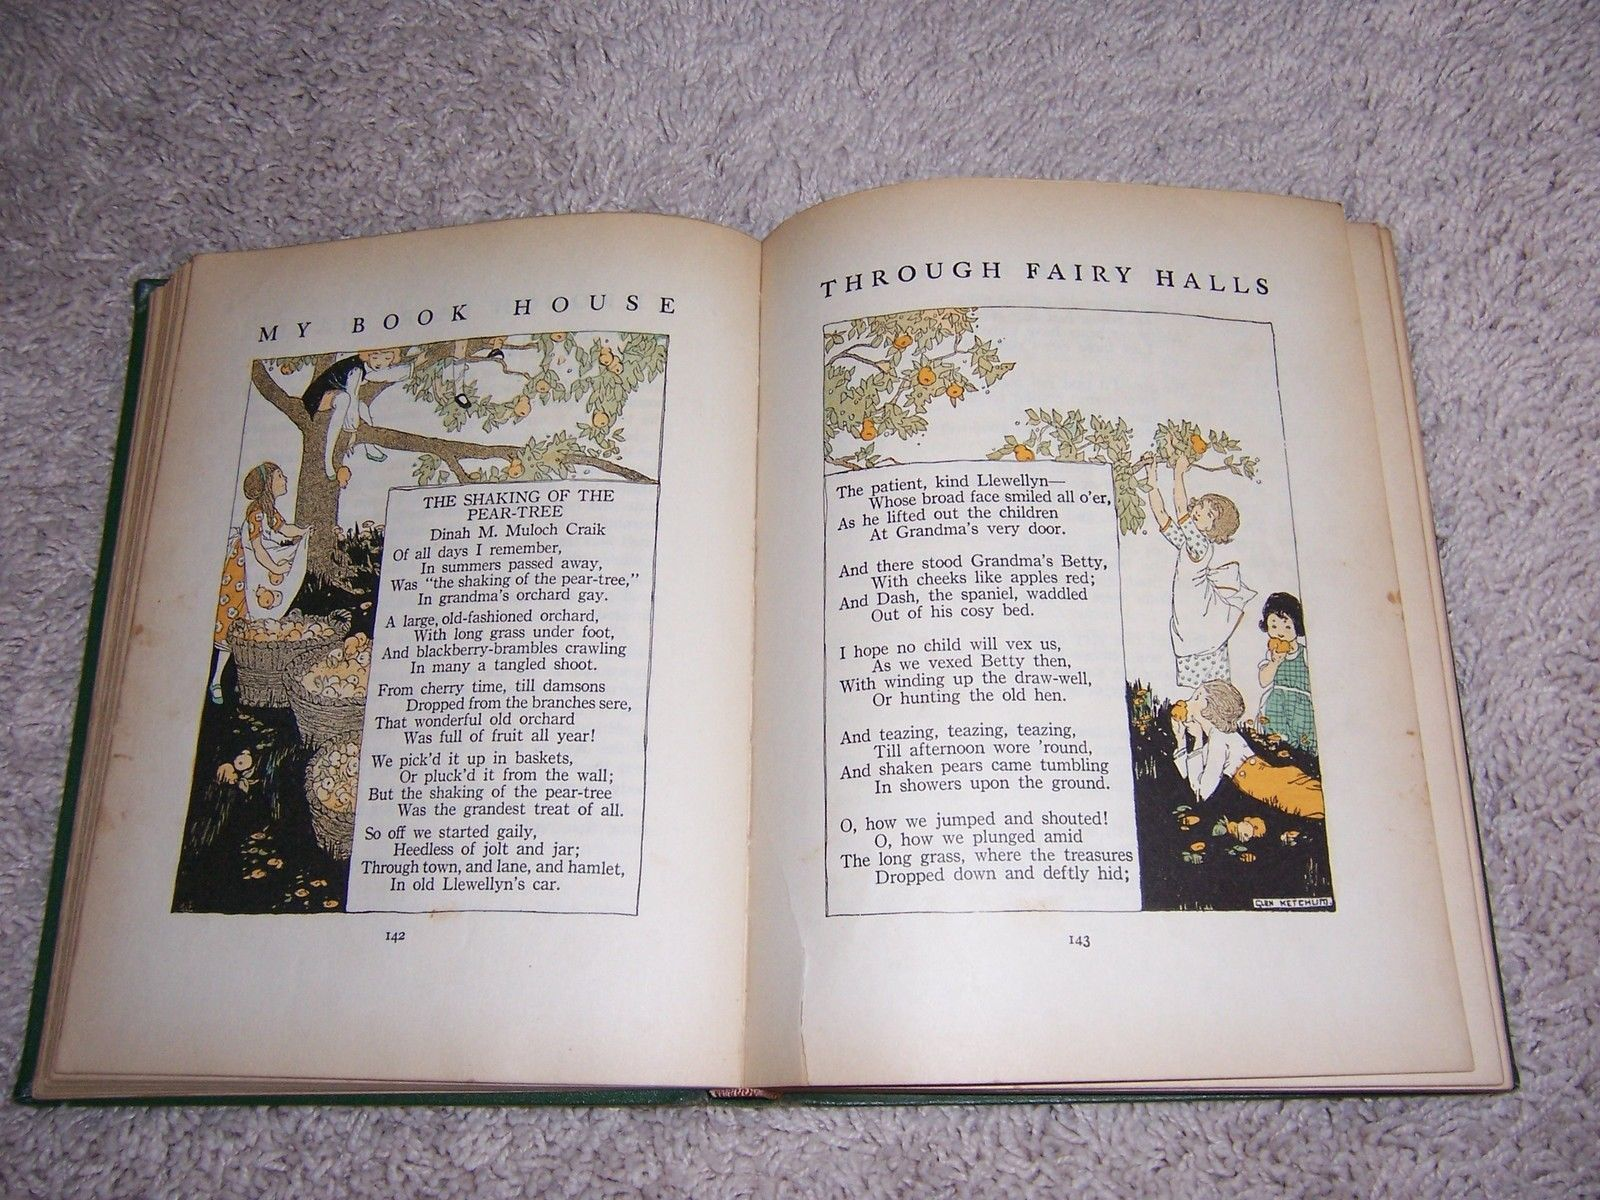 1920 Volume 3 MY BOOK HOUSE THROUGH FAIRY HALLS//1st Ed